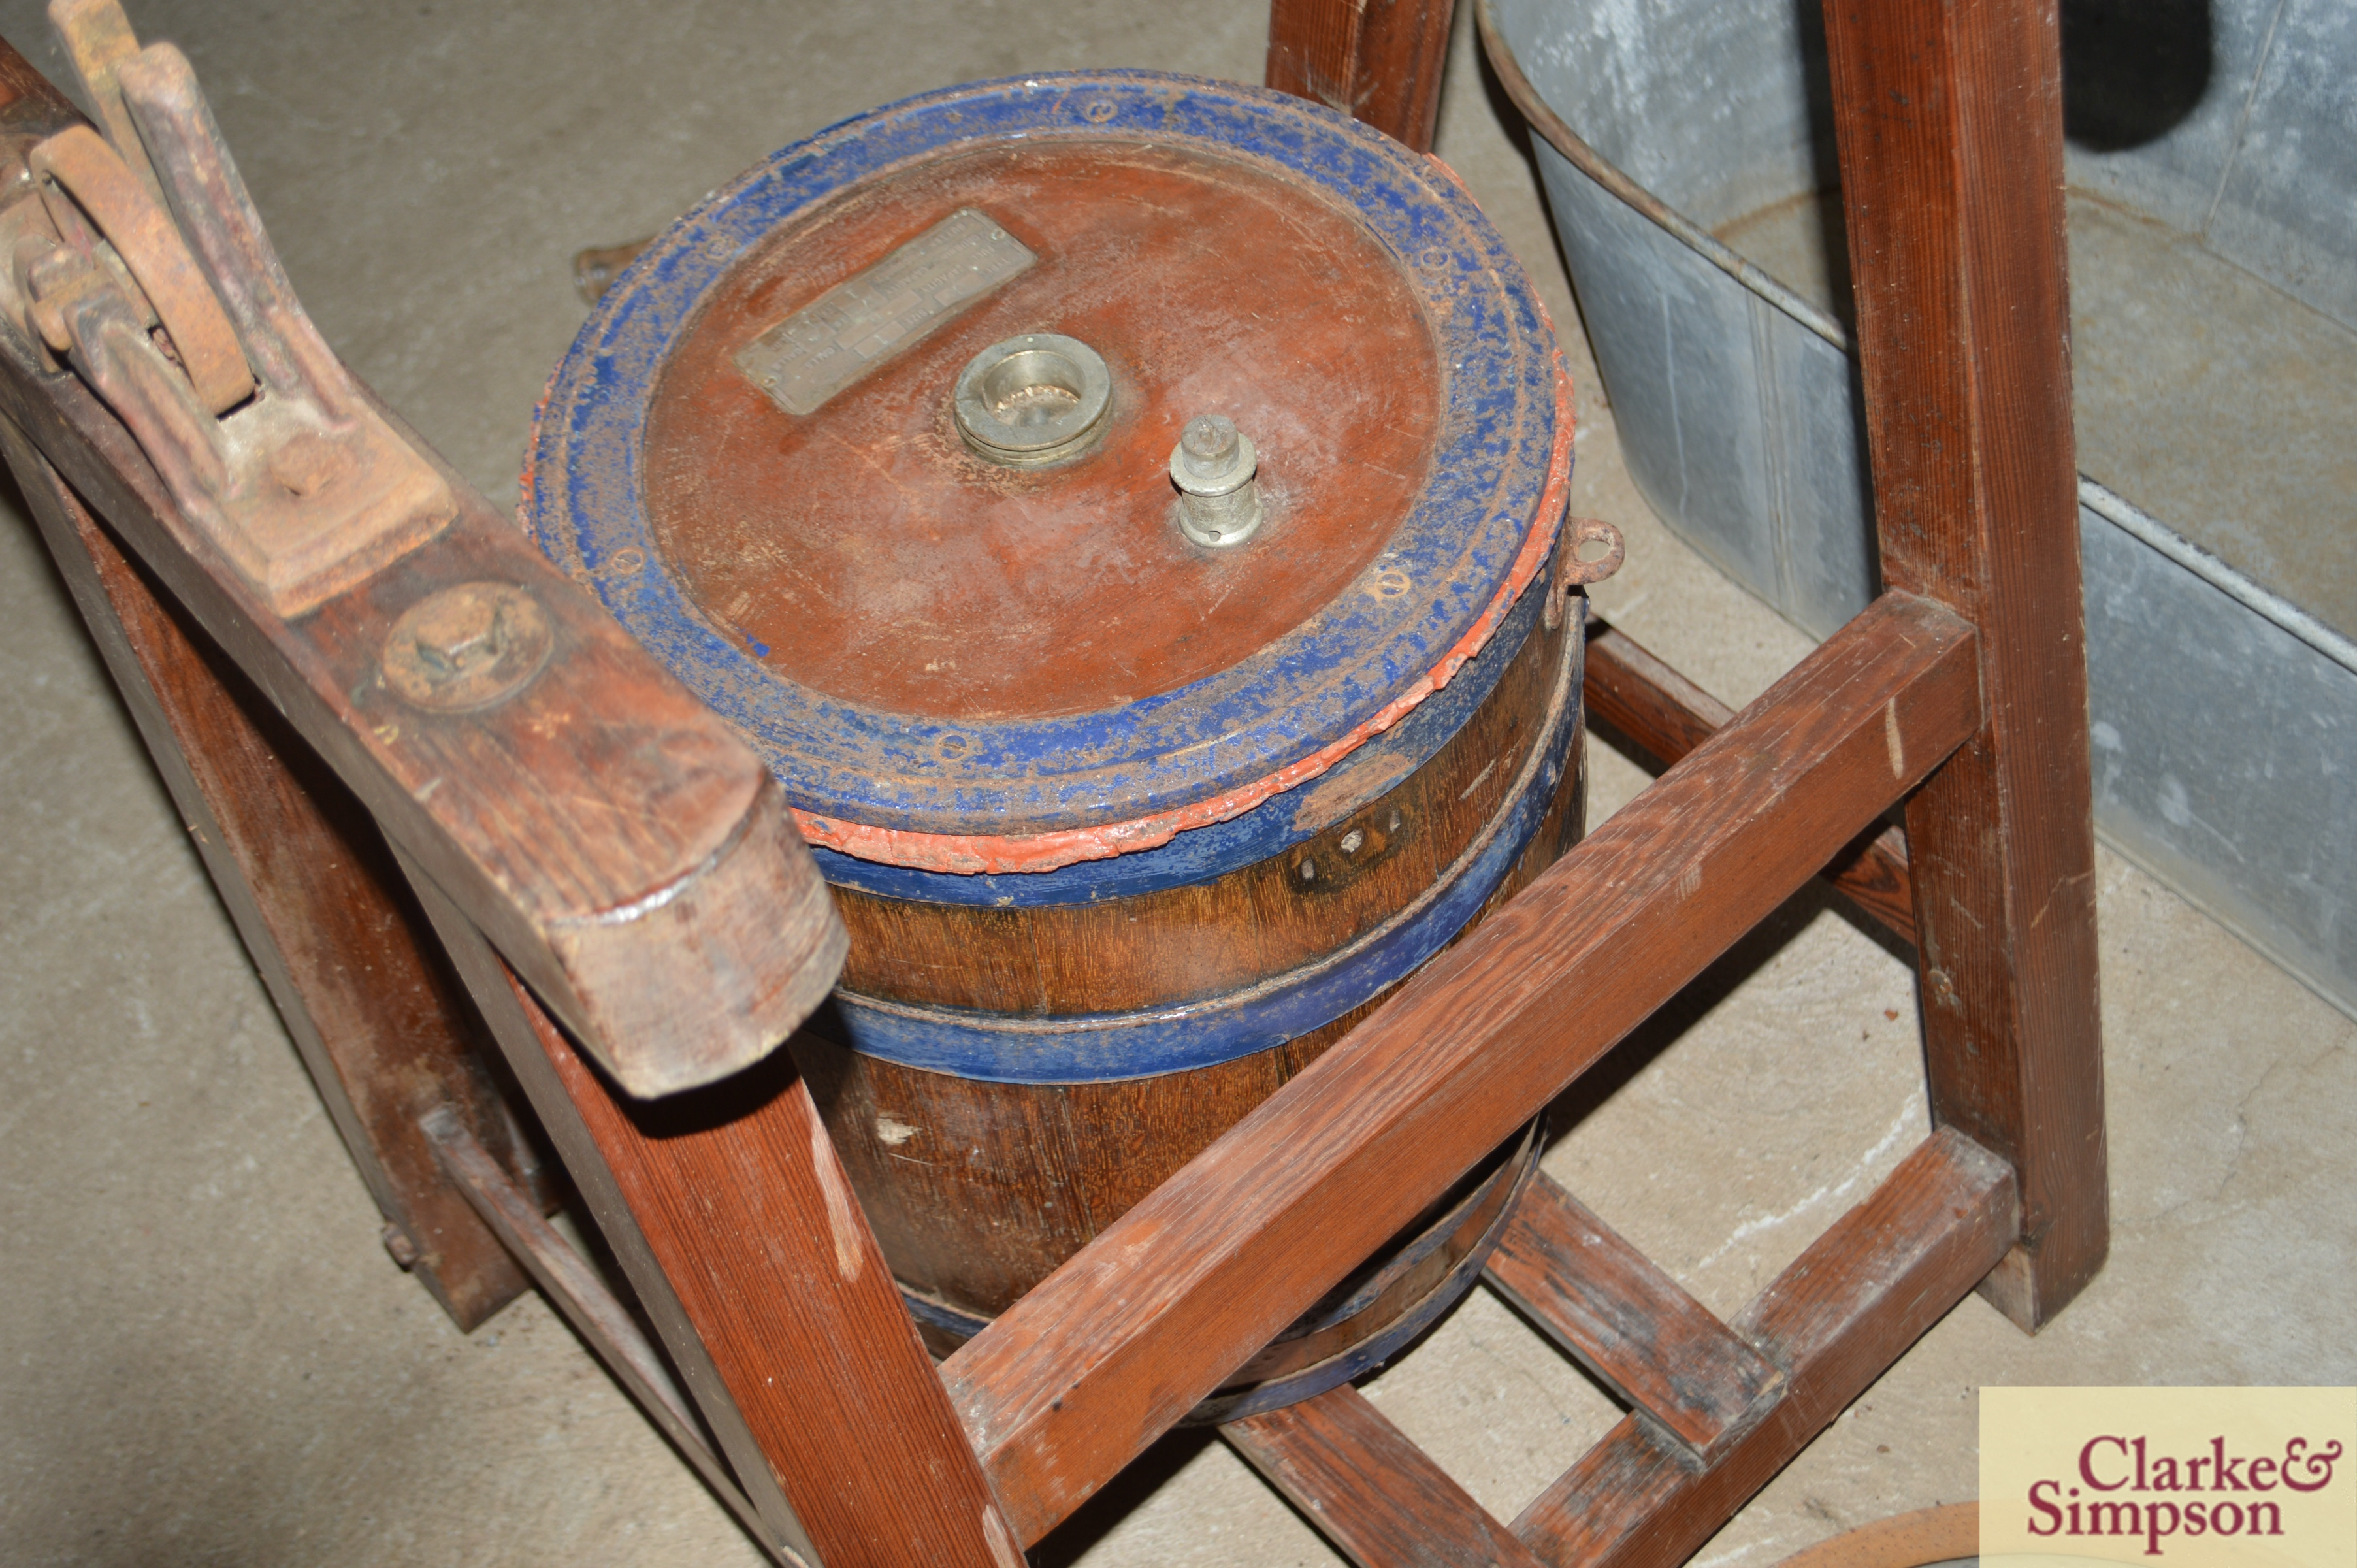 An old butter churn with stand and cream separator - Image 8 of 13